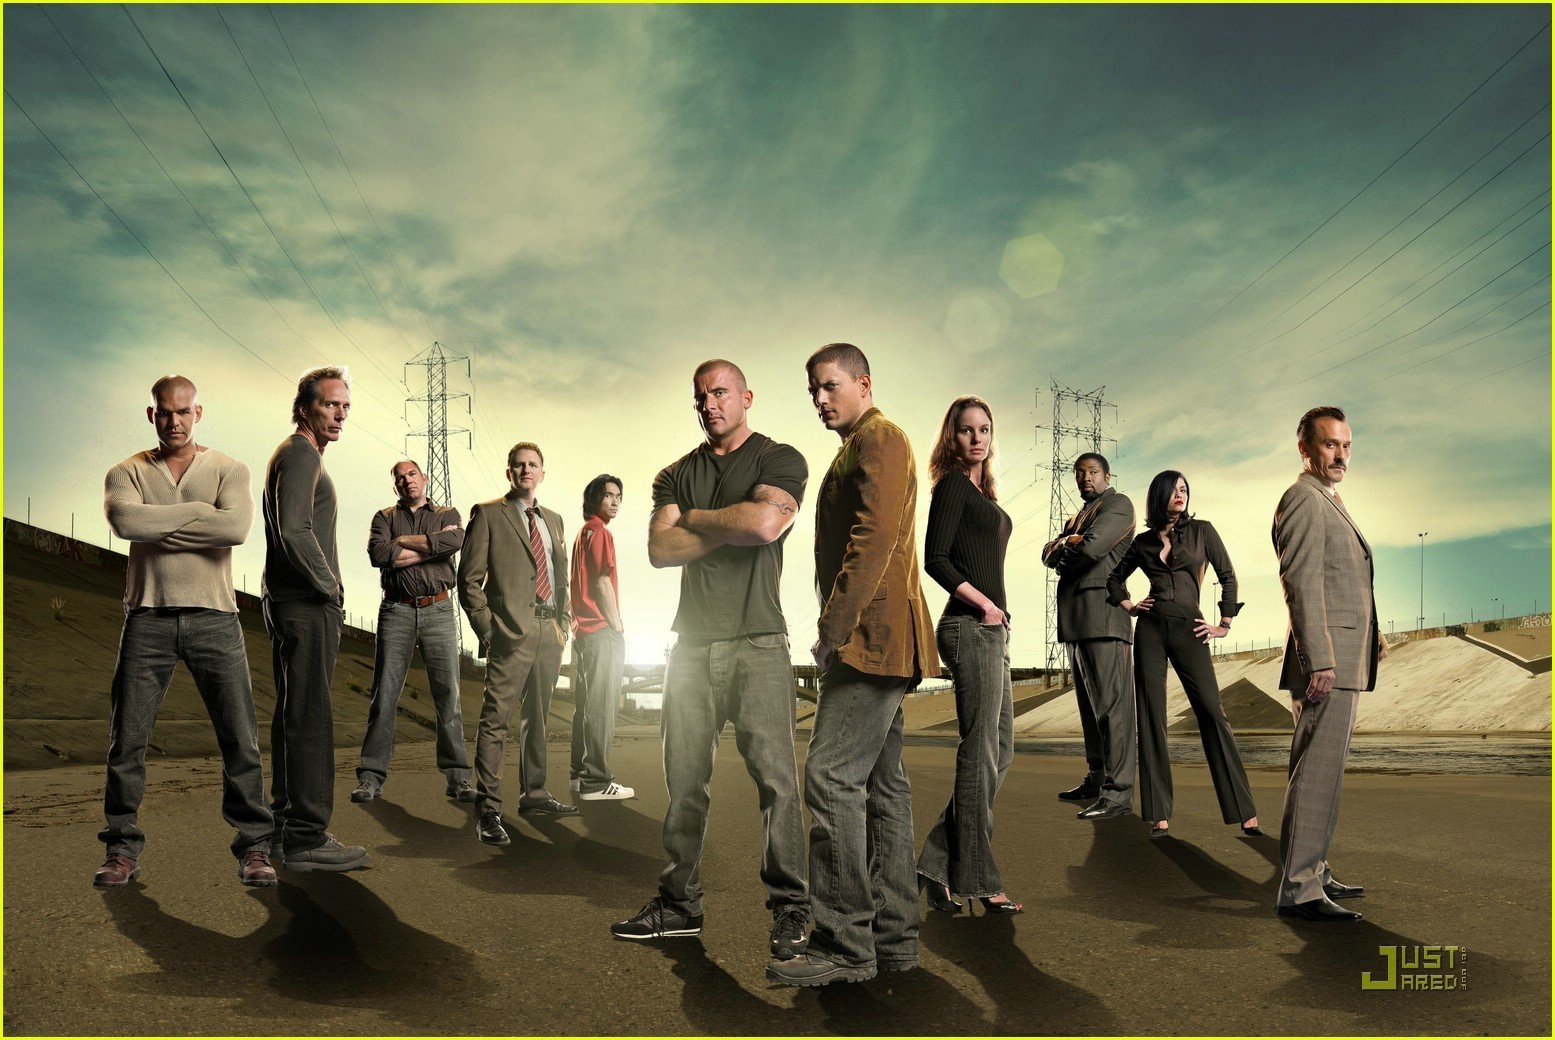 http://images1.fanpop.com/images/photos/2000000/Prison-break-season-4-wallpaper-prison-break-2075467-1555-1040.jpg